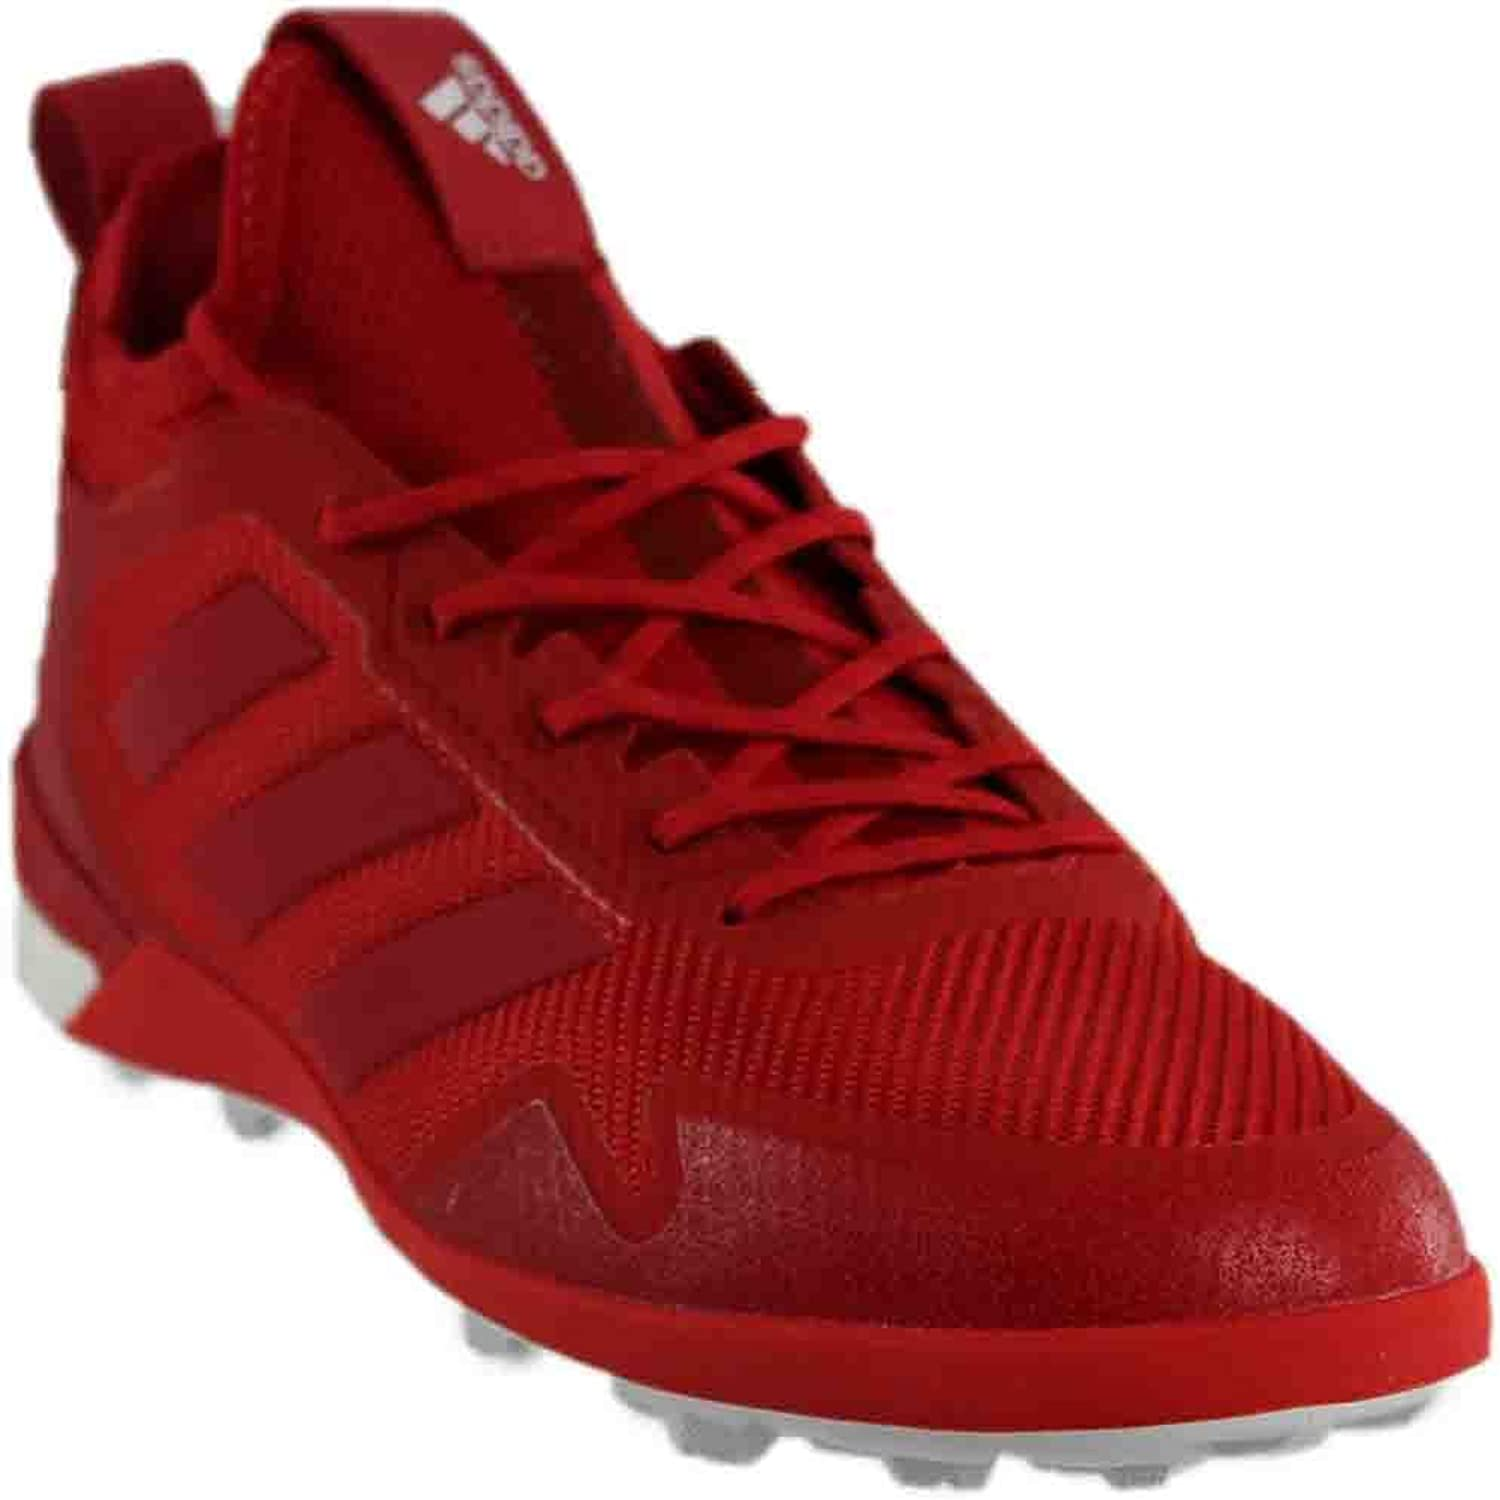 Adidas Ace Tango 17.1 Mens Turf Soccer shoes